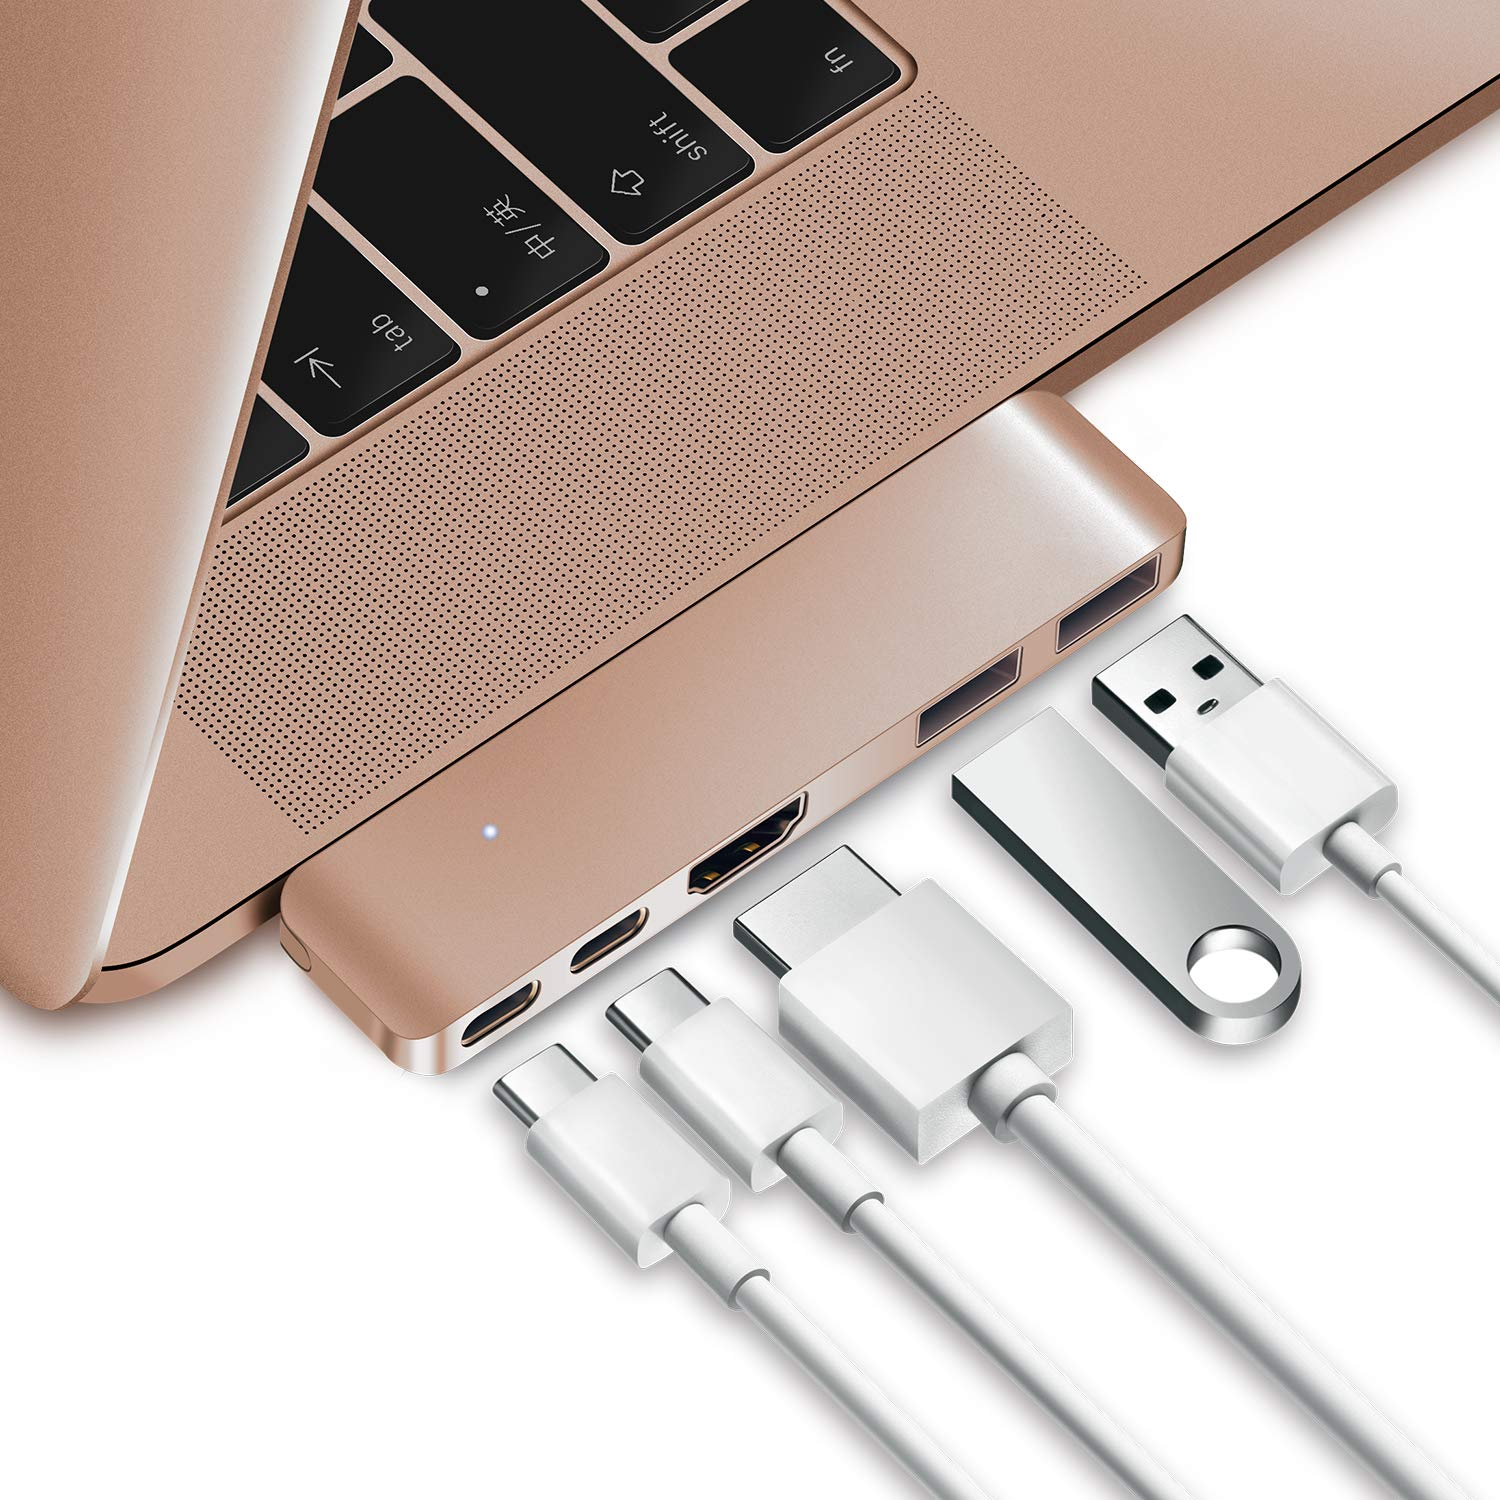 Purgo USB C Hub Adapter Dongle for MacBook Air 2018/2019, Ultra Slim Type C Hub with 4K HDMI, 100W Power Delivery, 40Gbps Thunderbolt 3 5K@60Hz and 2xUSB 3.0 (Gold)